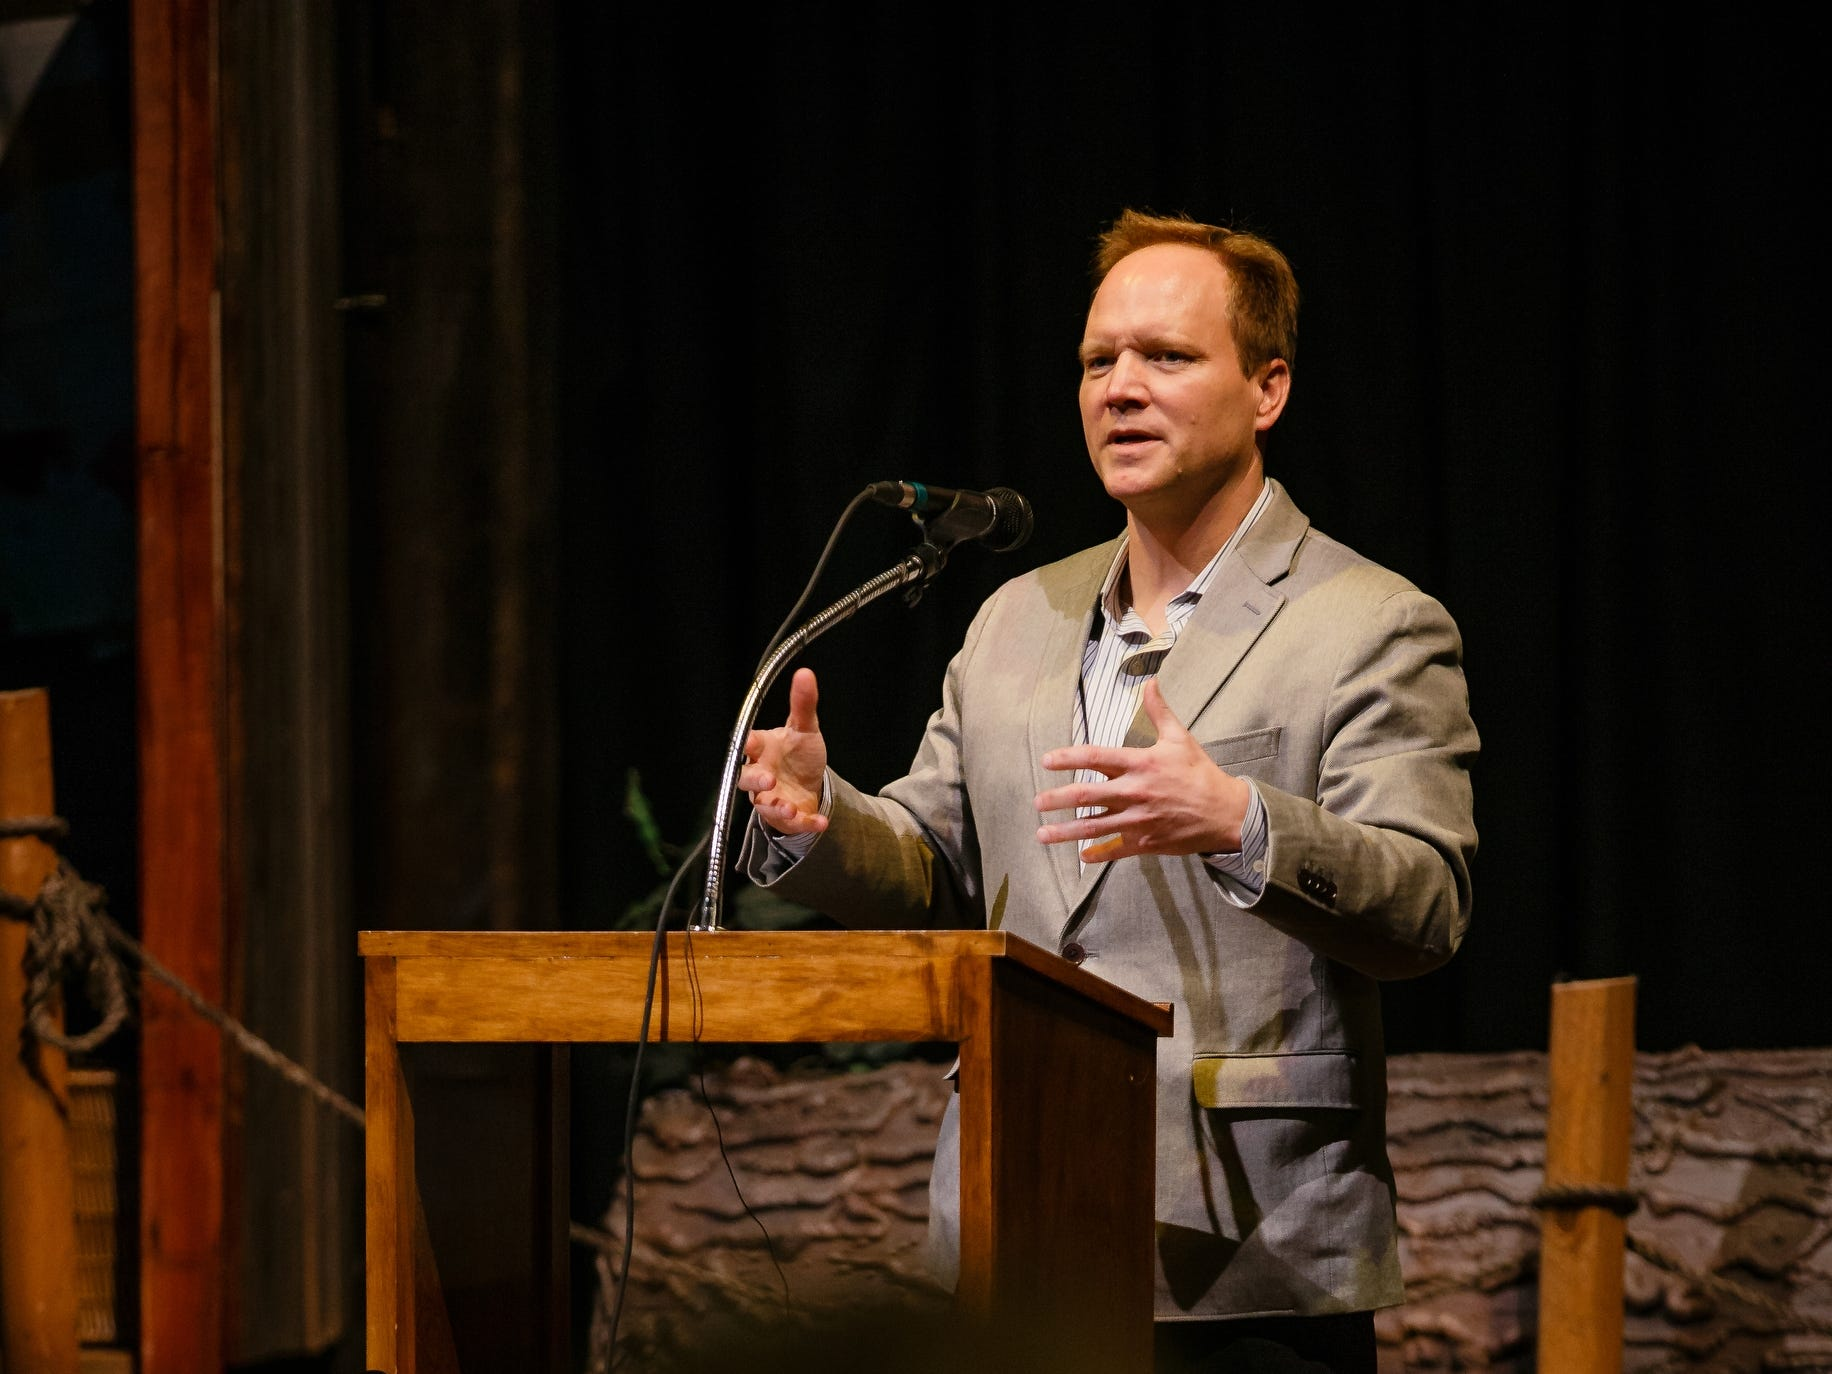 Greg Sands, Managing partner of Costanoa Ventures, speaks to a crowd at the History Boy Theater on Saturday, Dec. 8, 2018, in Jefferson. The event was to announce their partnership with Pillar Technology and other Silicon Valley leaders in an effort to bring rural jobs to Iowa.